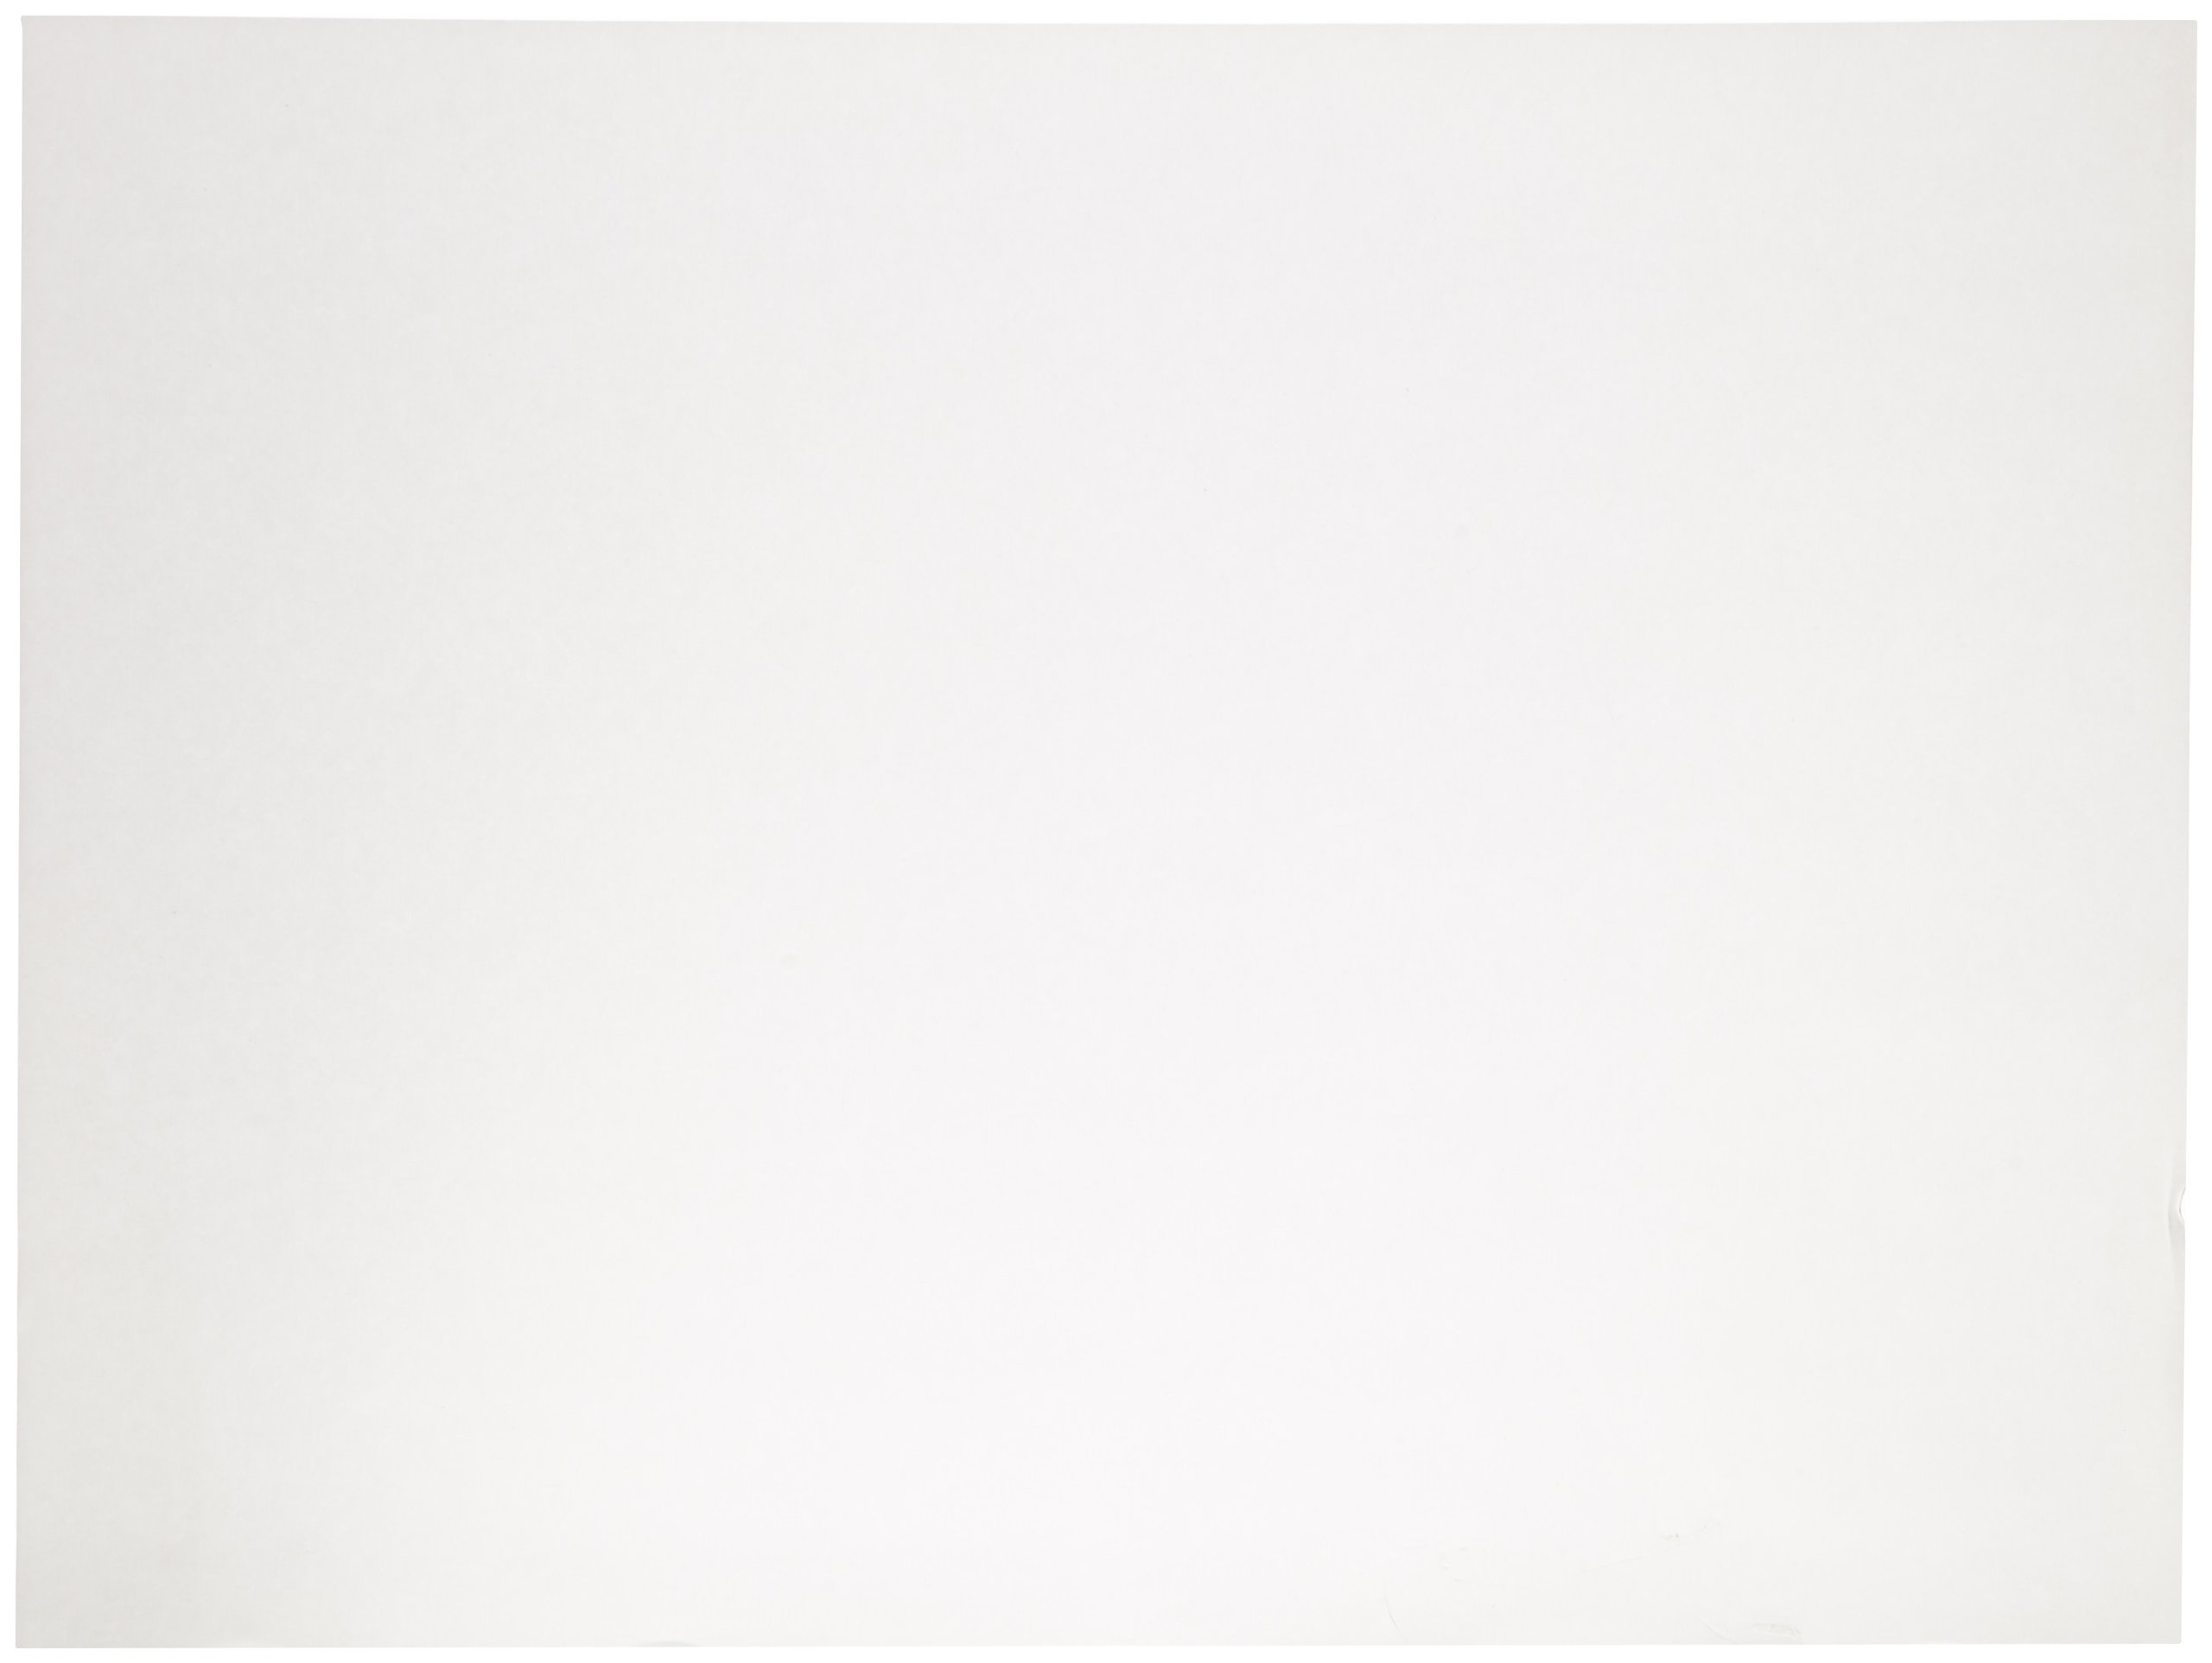 Sax Sulphite Drawing Paper, 80 lb, 18 x 24 Inches, Extra-White, Pack of 500